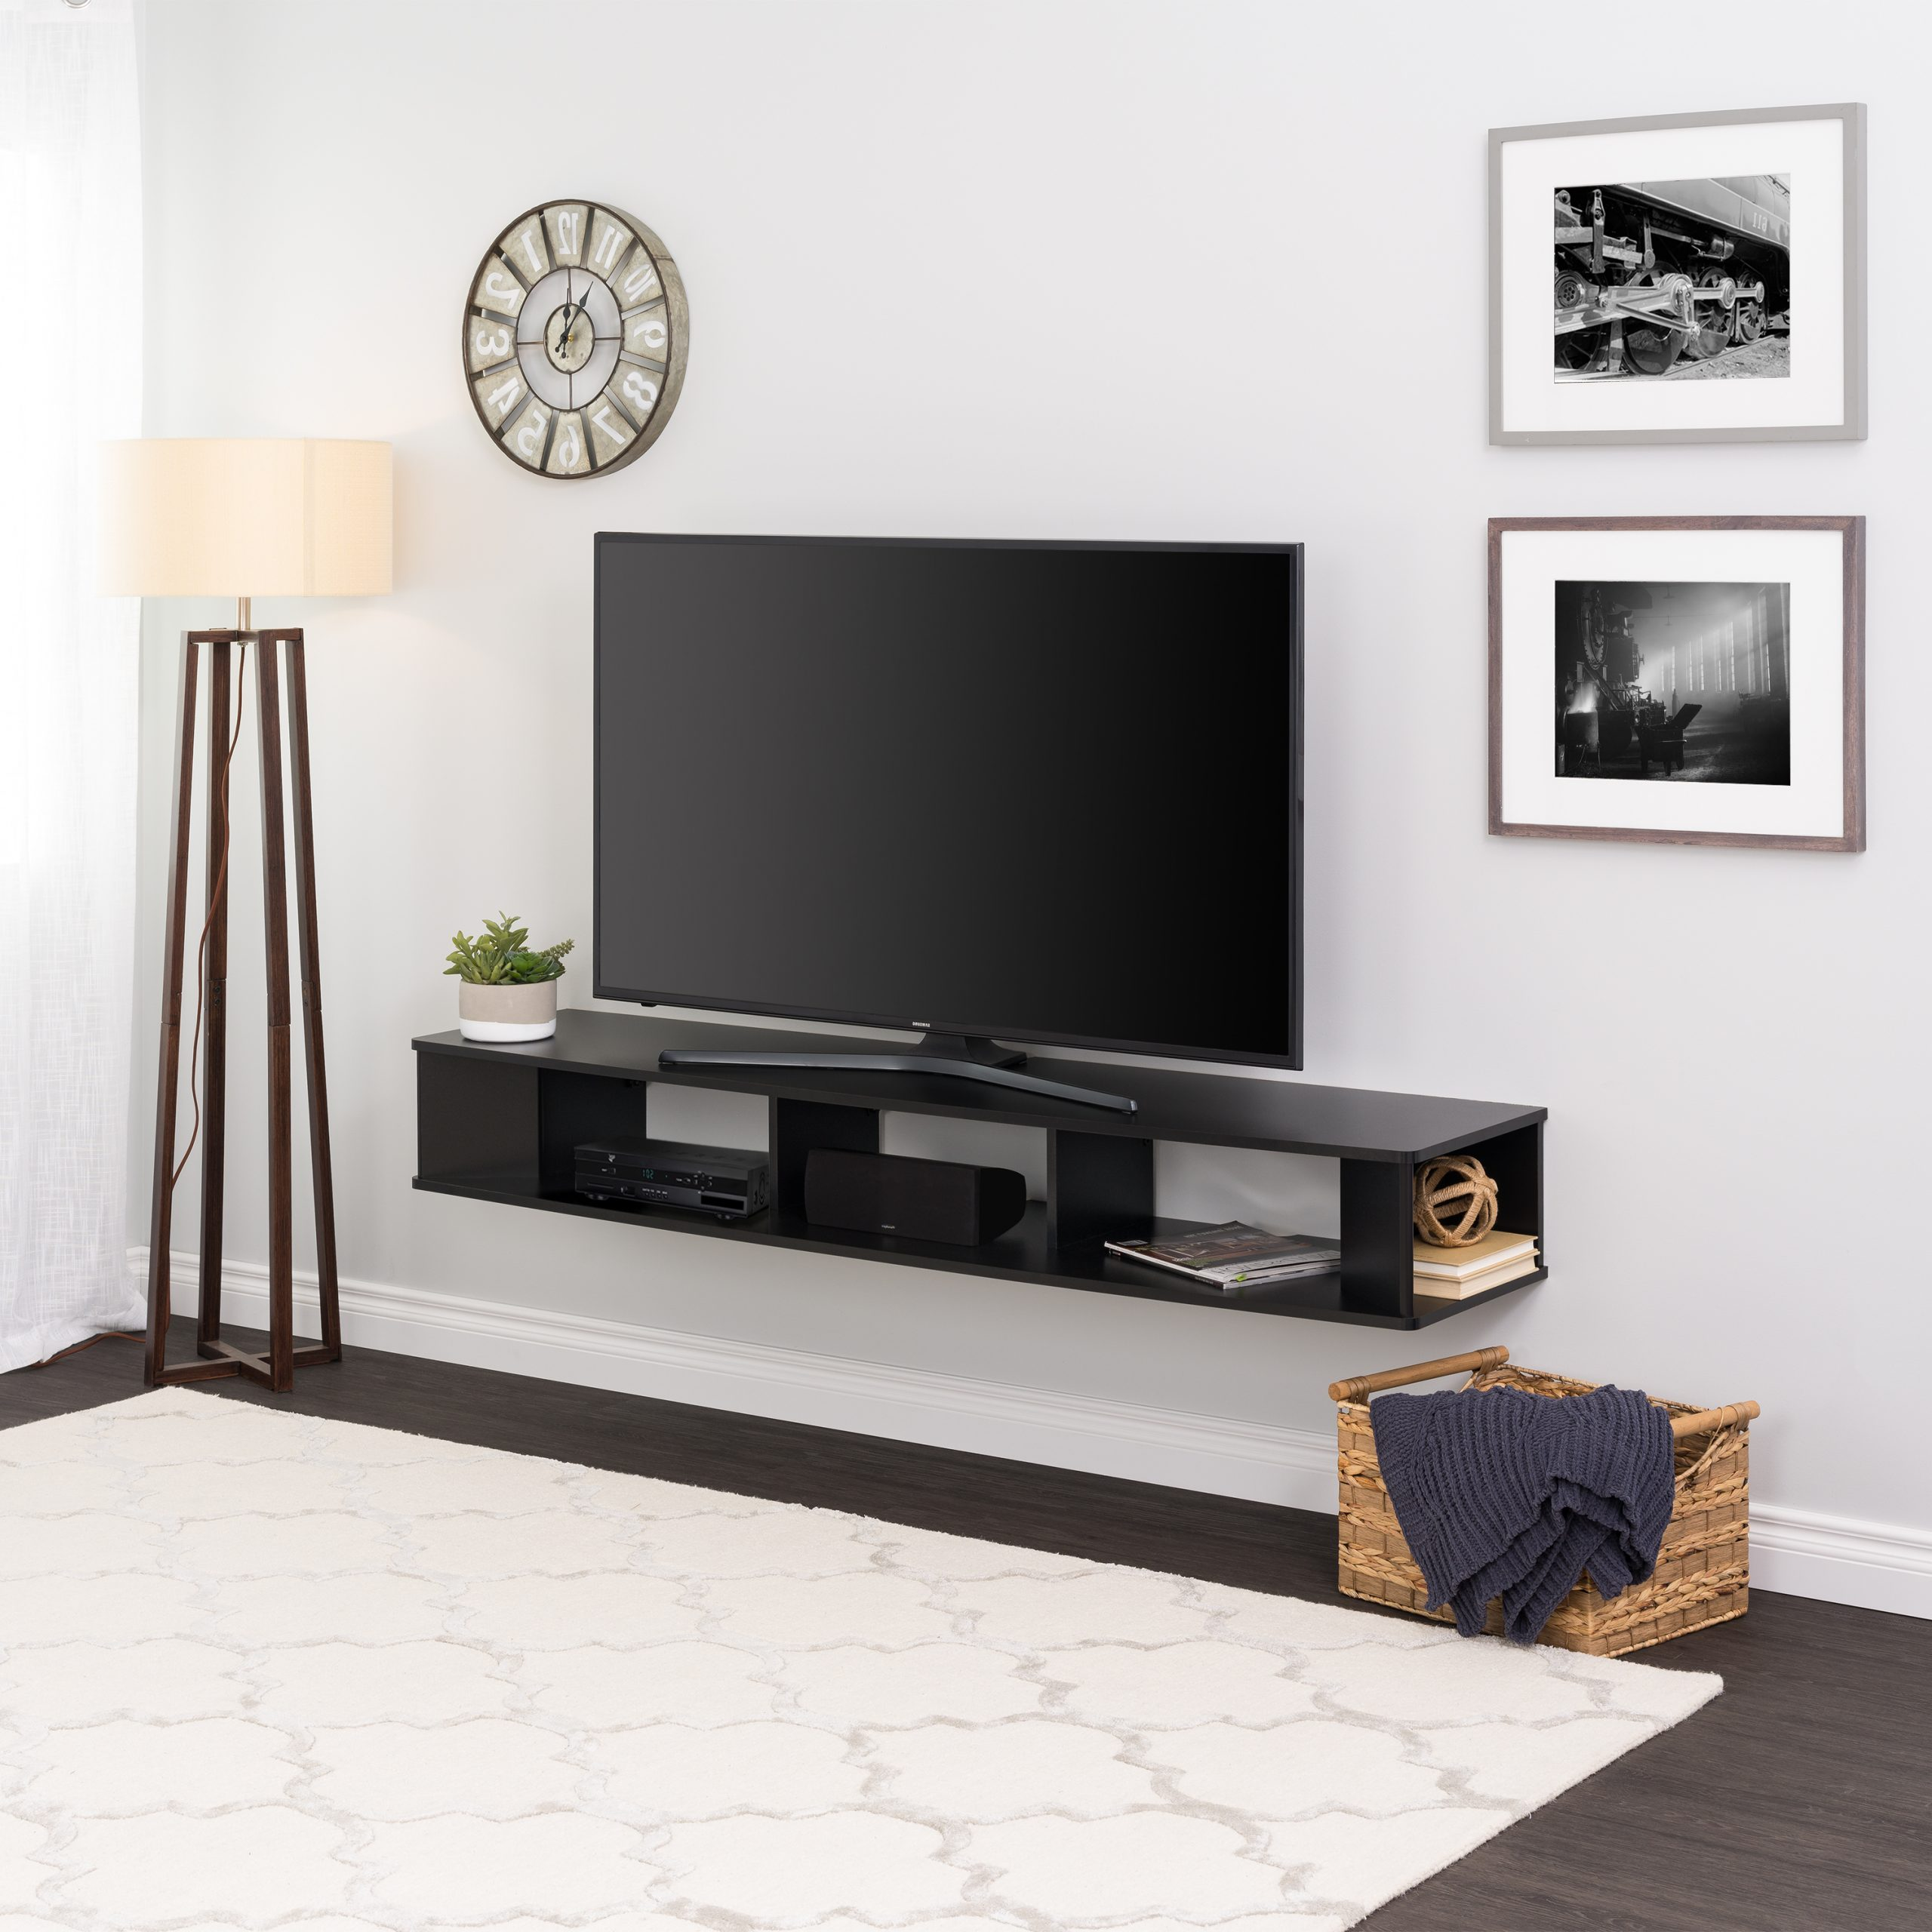 Most Up To Date Anya Wide Tv Stands With Prepac 70 Inch Wide Wall Mounted Tv Stand, Black – Walmart (View 1 of 10)